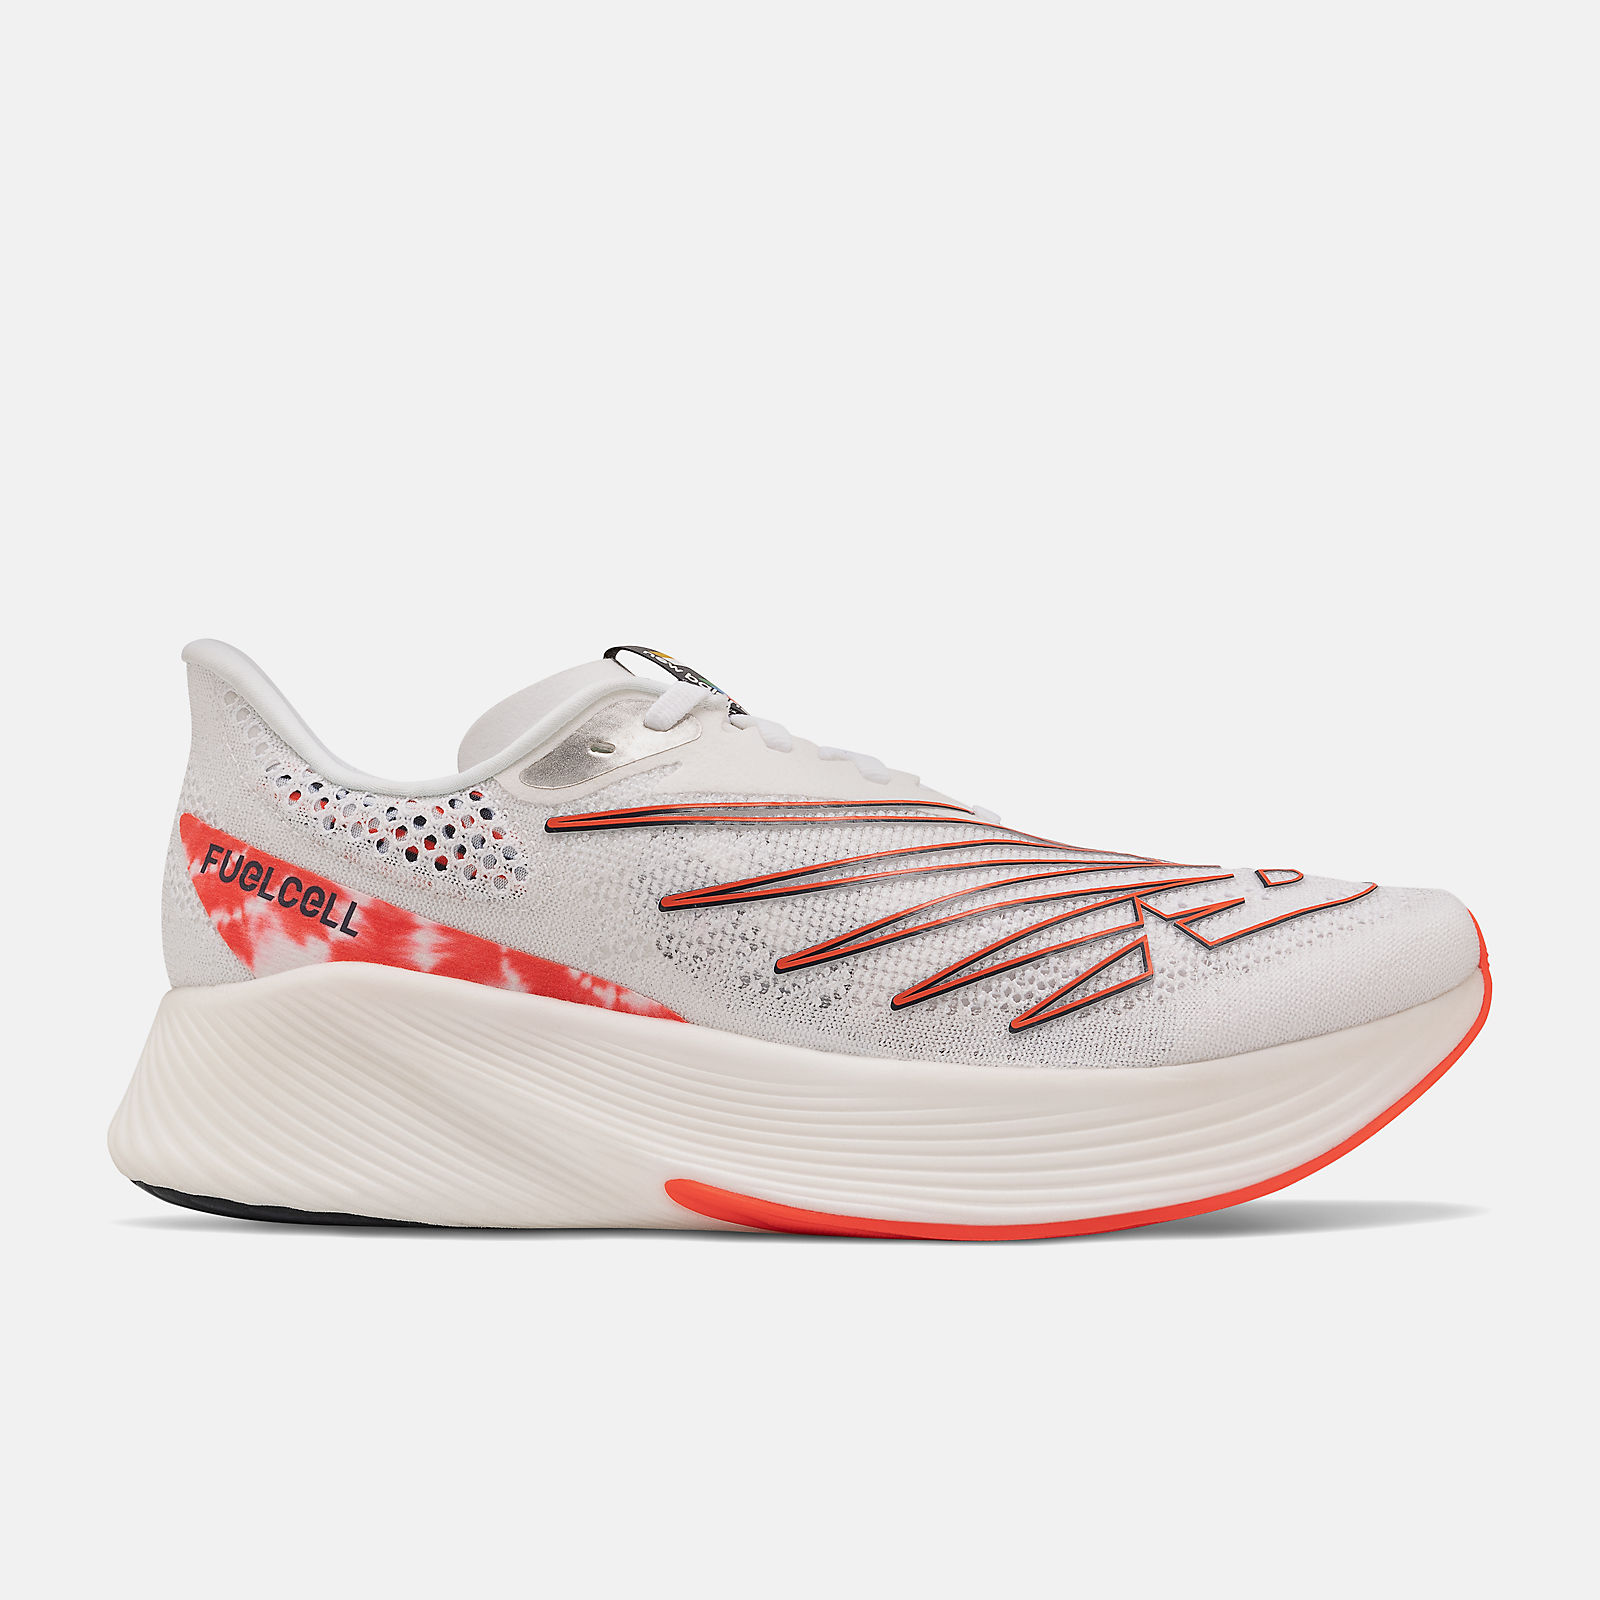 FuelCell RC Elite v2 - New Balance